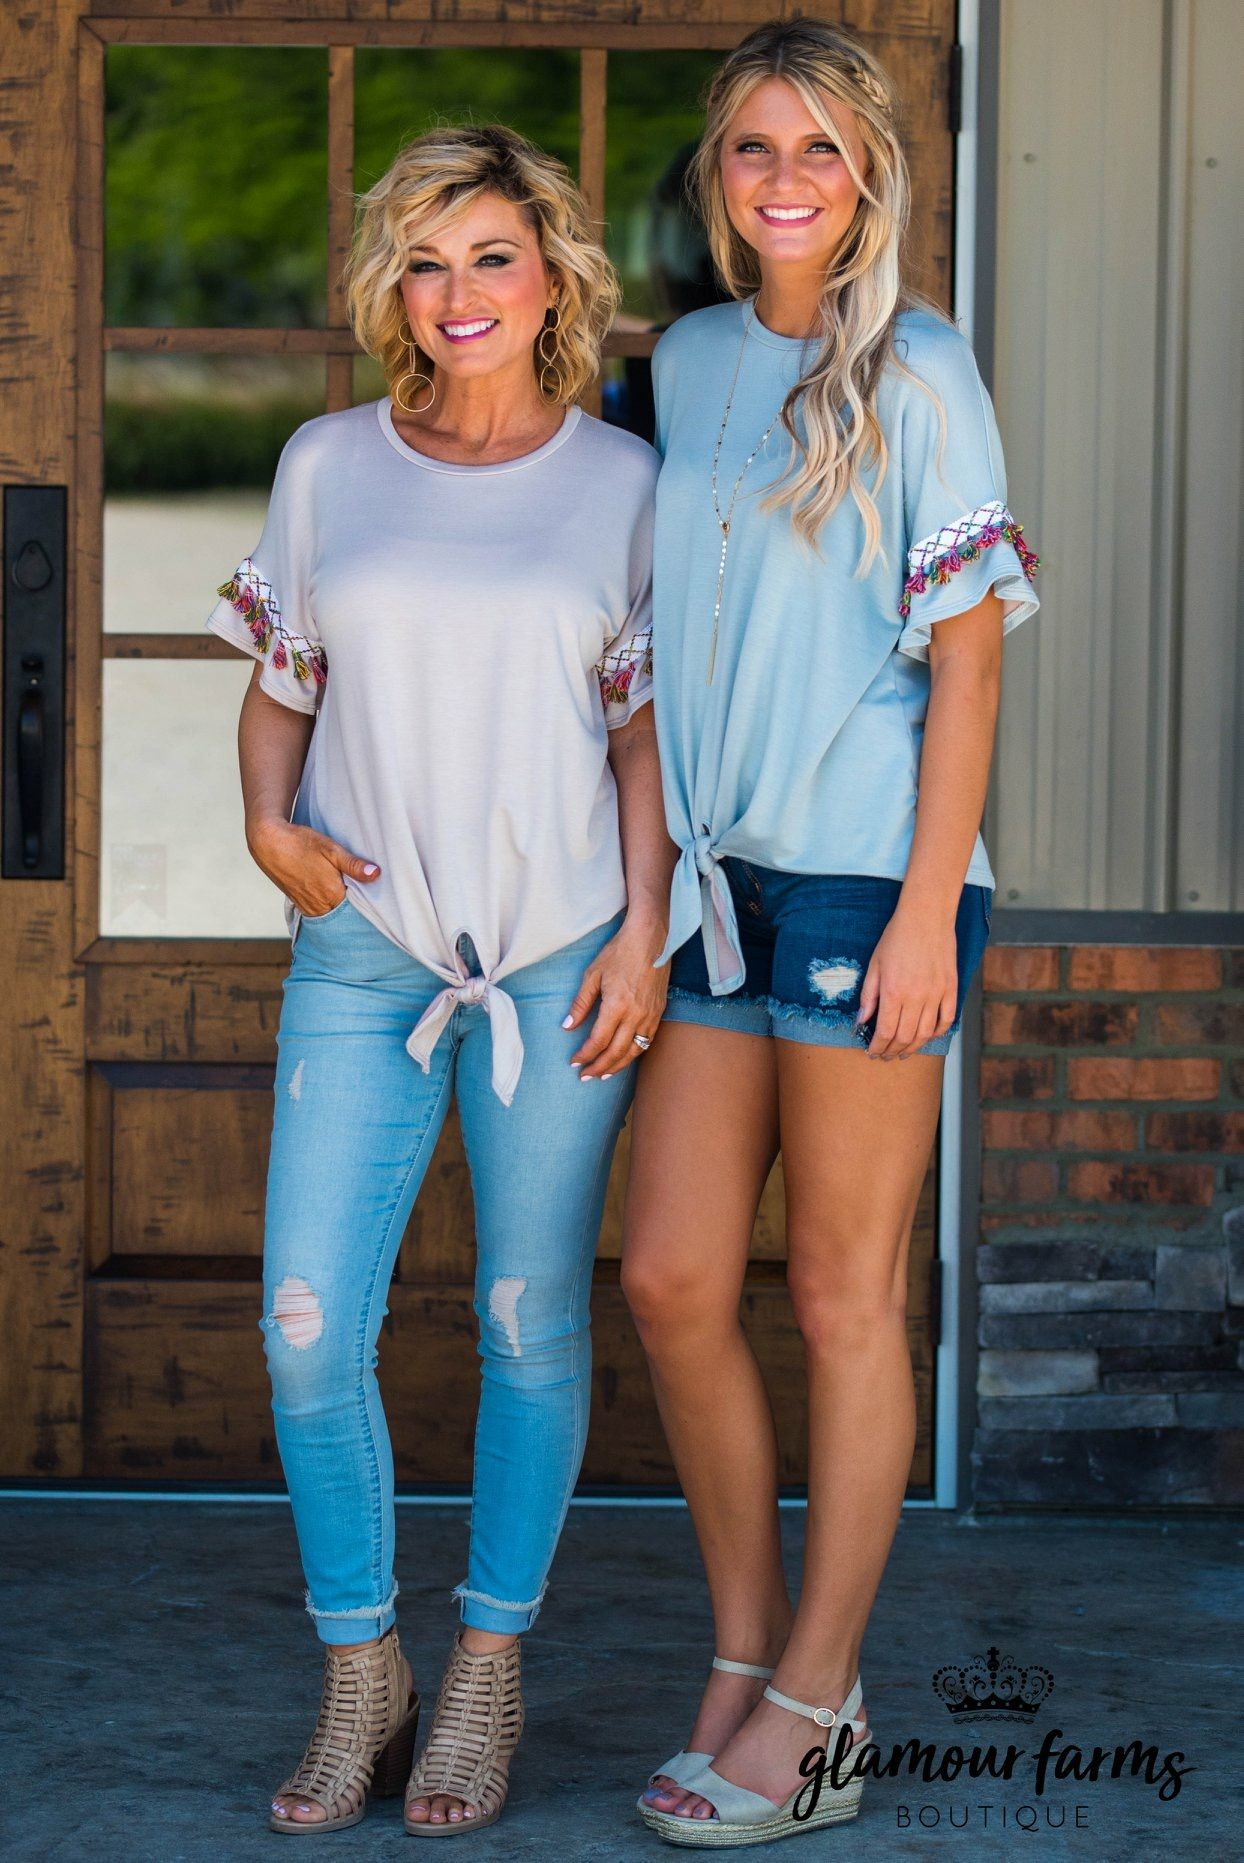 da799ec3b250 Pin by Glamour Farms Boutique on Glamour Farms Boutique in 2019 ...